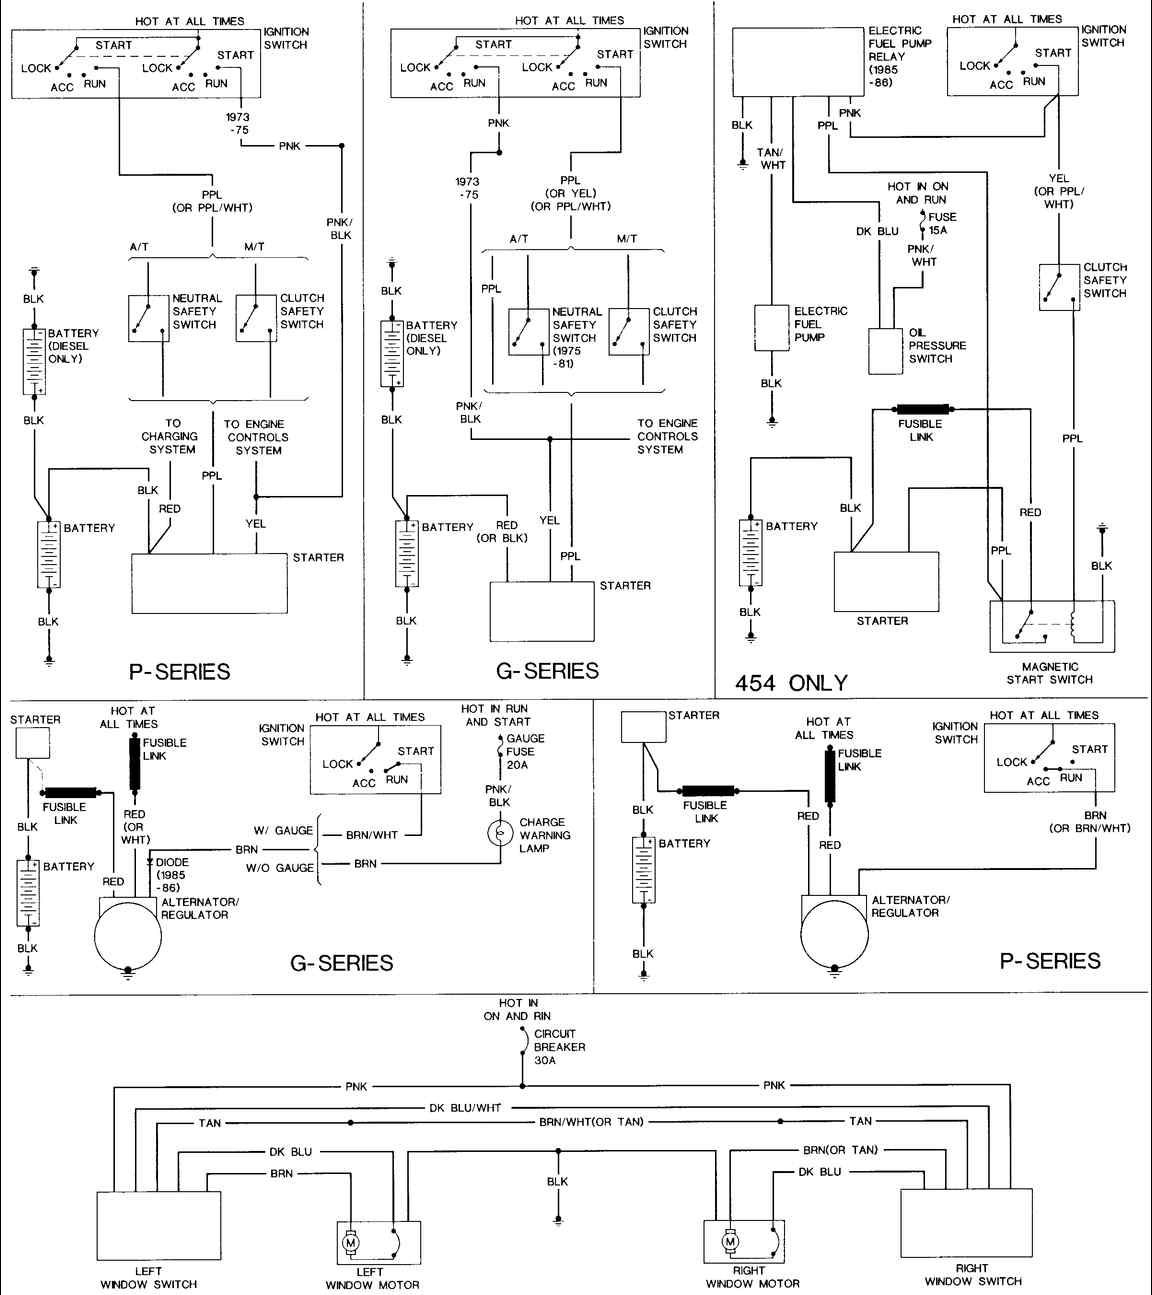 small resolution of chevy g20 wiring diagram wiring diagram mega 1995 chevy g20 stereo wiring diagram chevy g20 wiring diagram